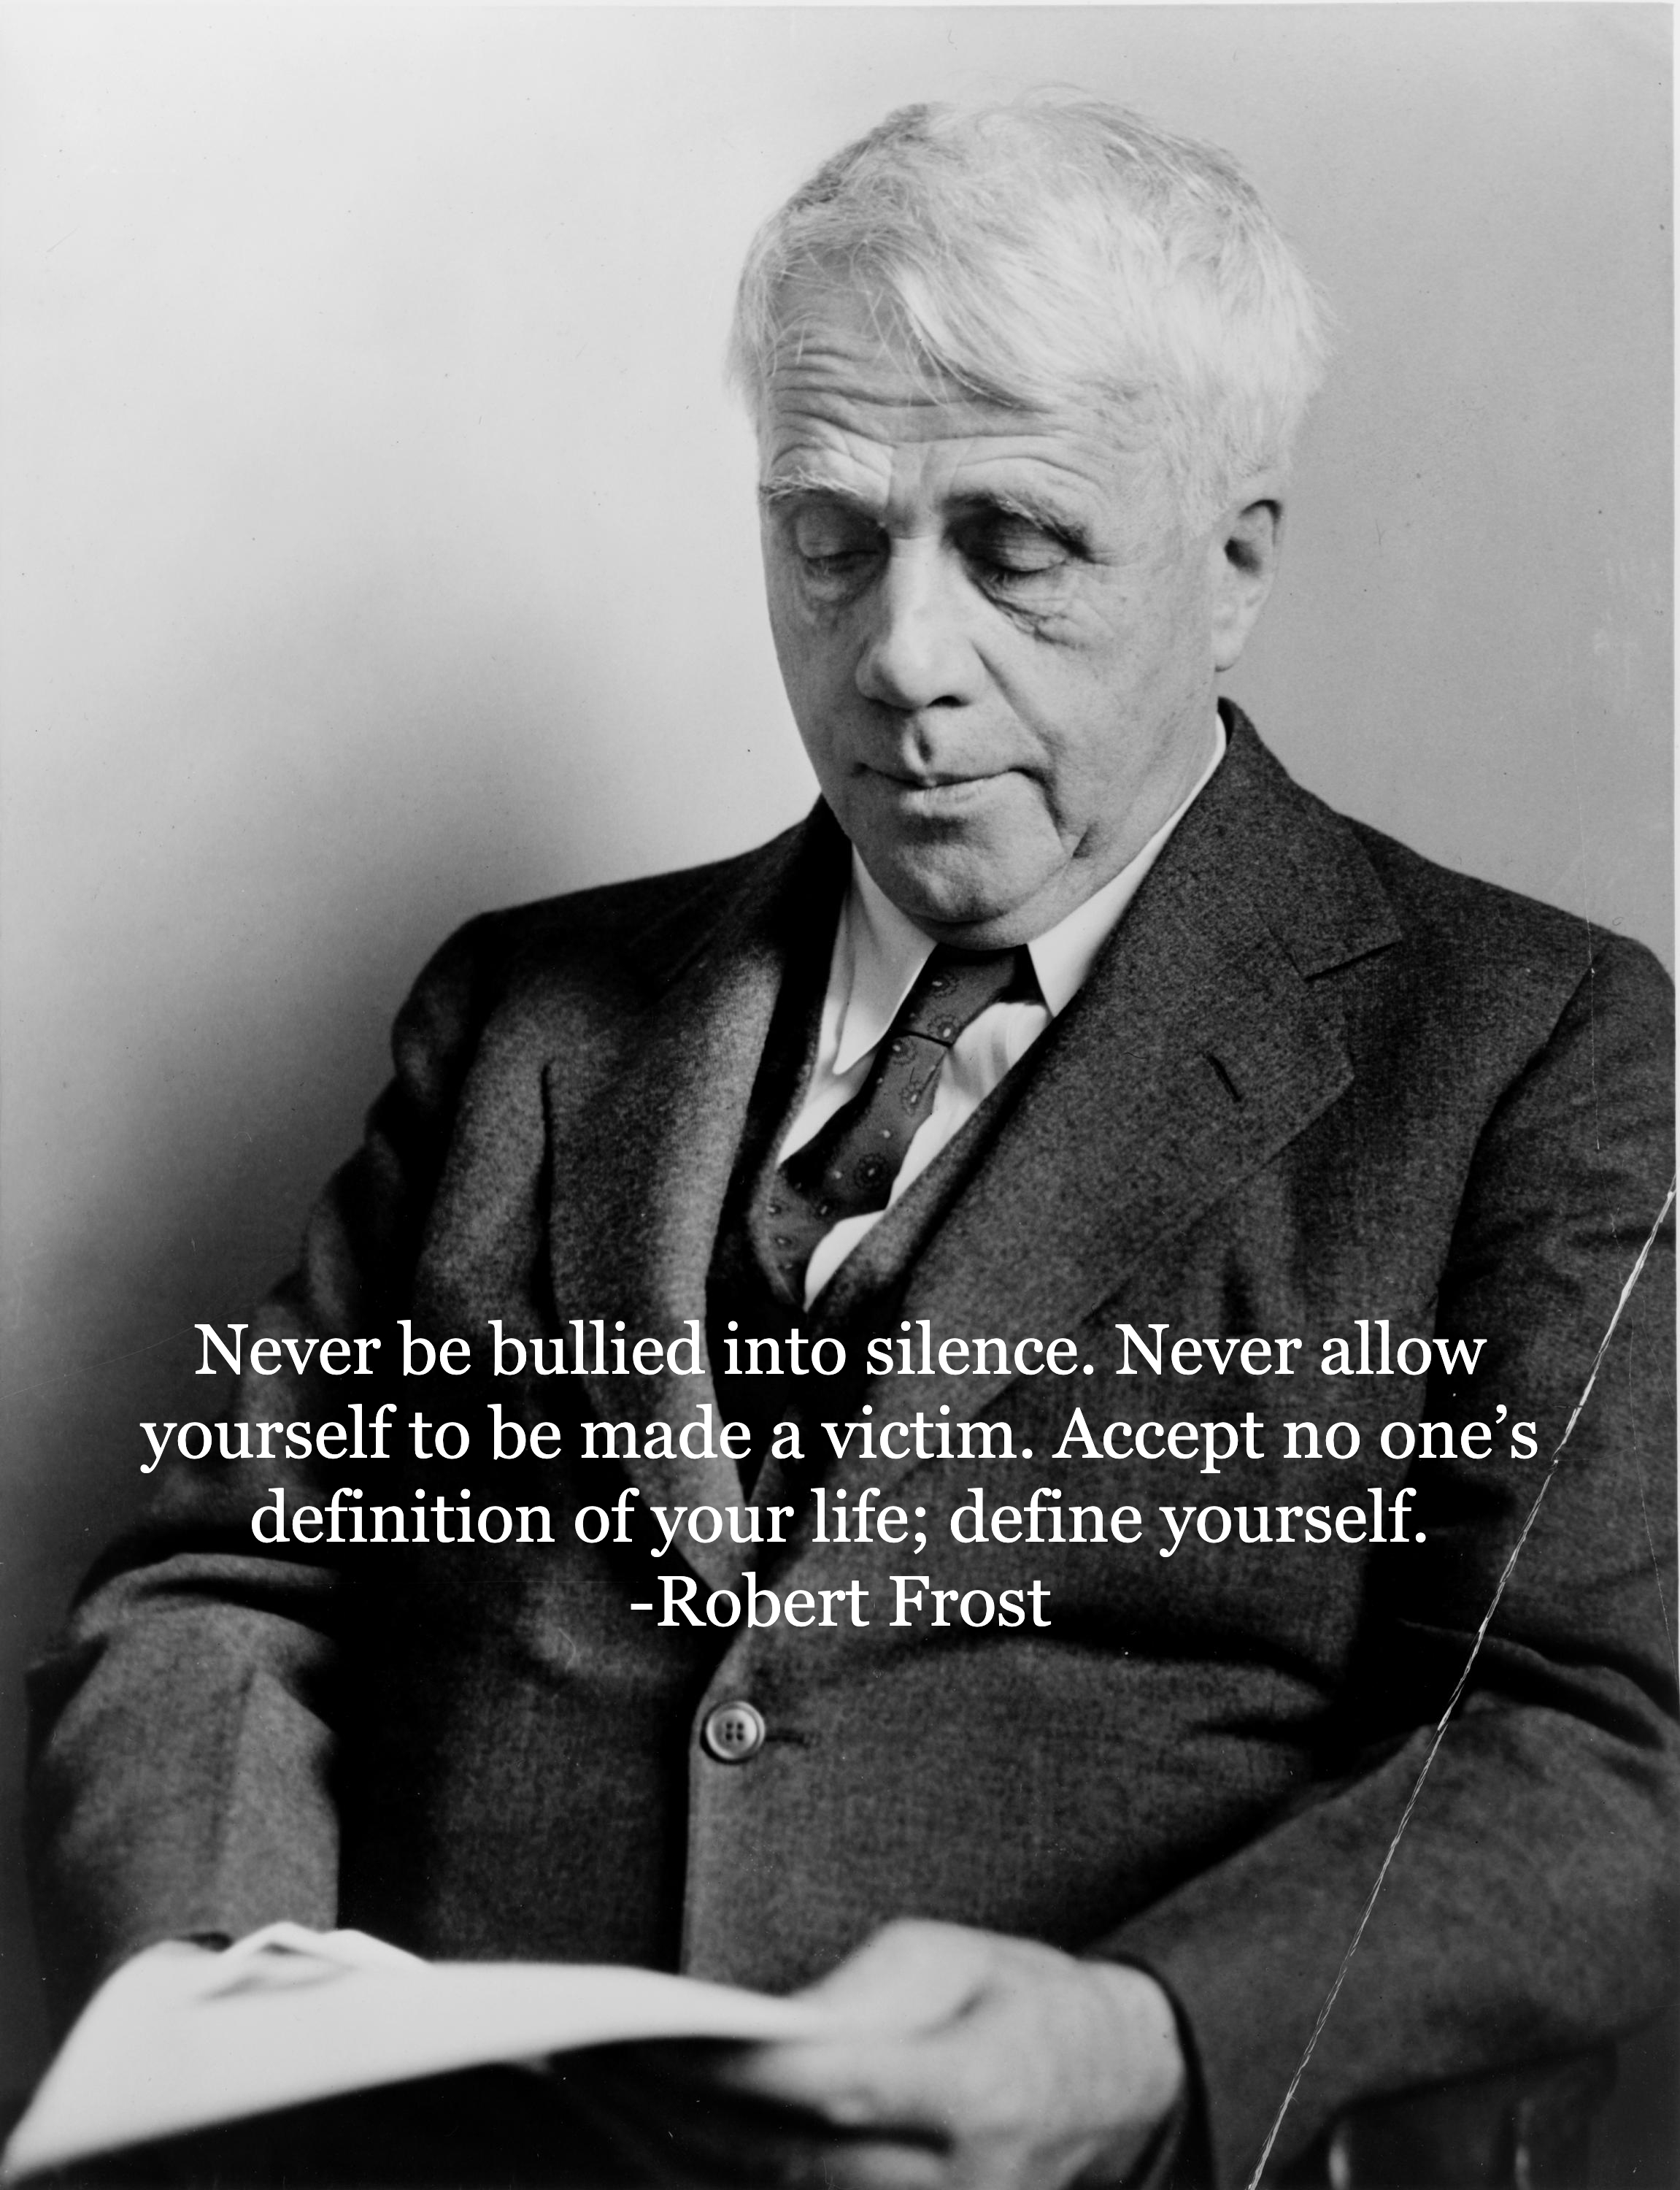 """""""Never be bullied into silence. Never allow yourself to be made a victim. Accept no one's definition of your life; define yourself""""- Robert Frost [2302 × 3000]"""